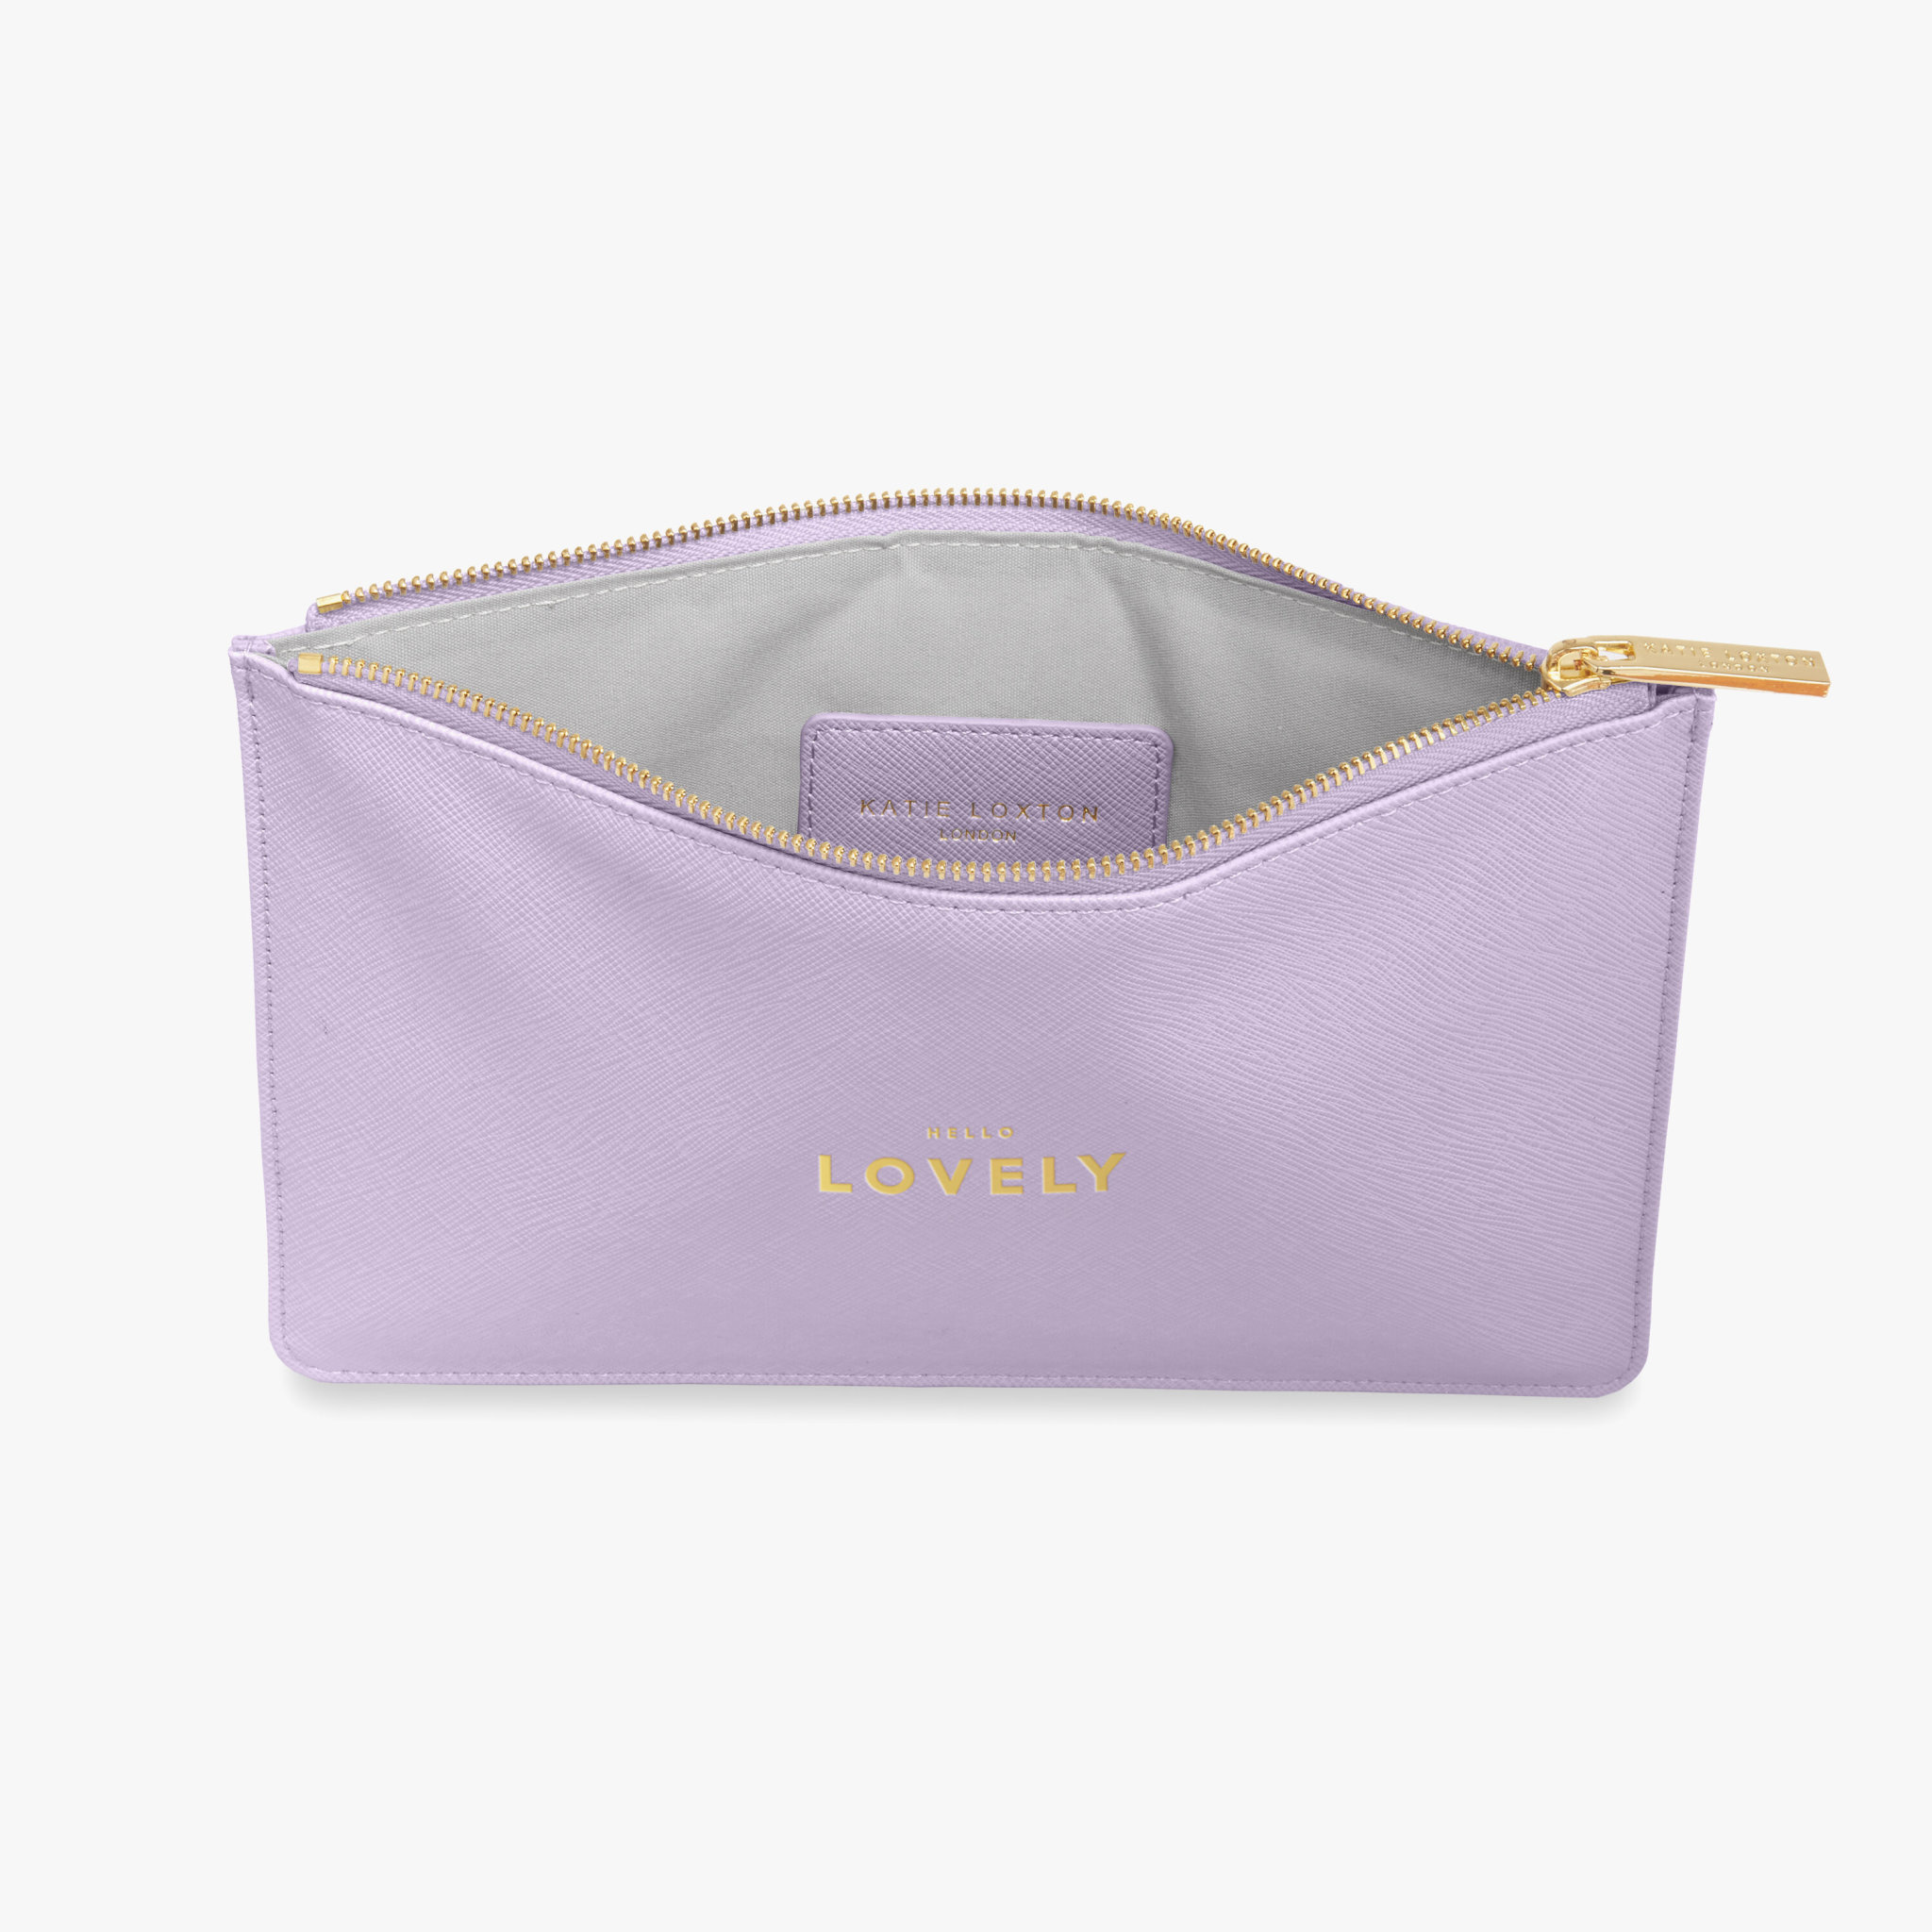 Katie Loxton Katie Loxton pouch - Hello lovely - Lilac - 24x16 cm